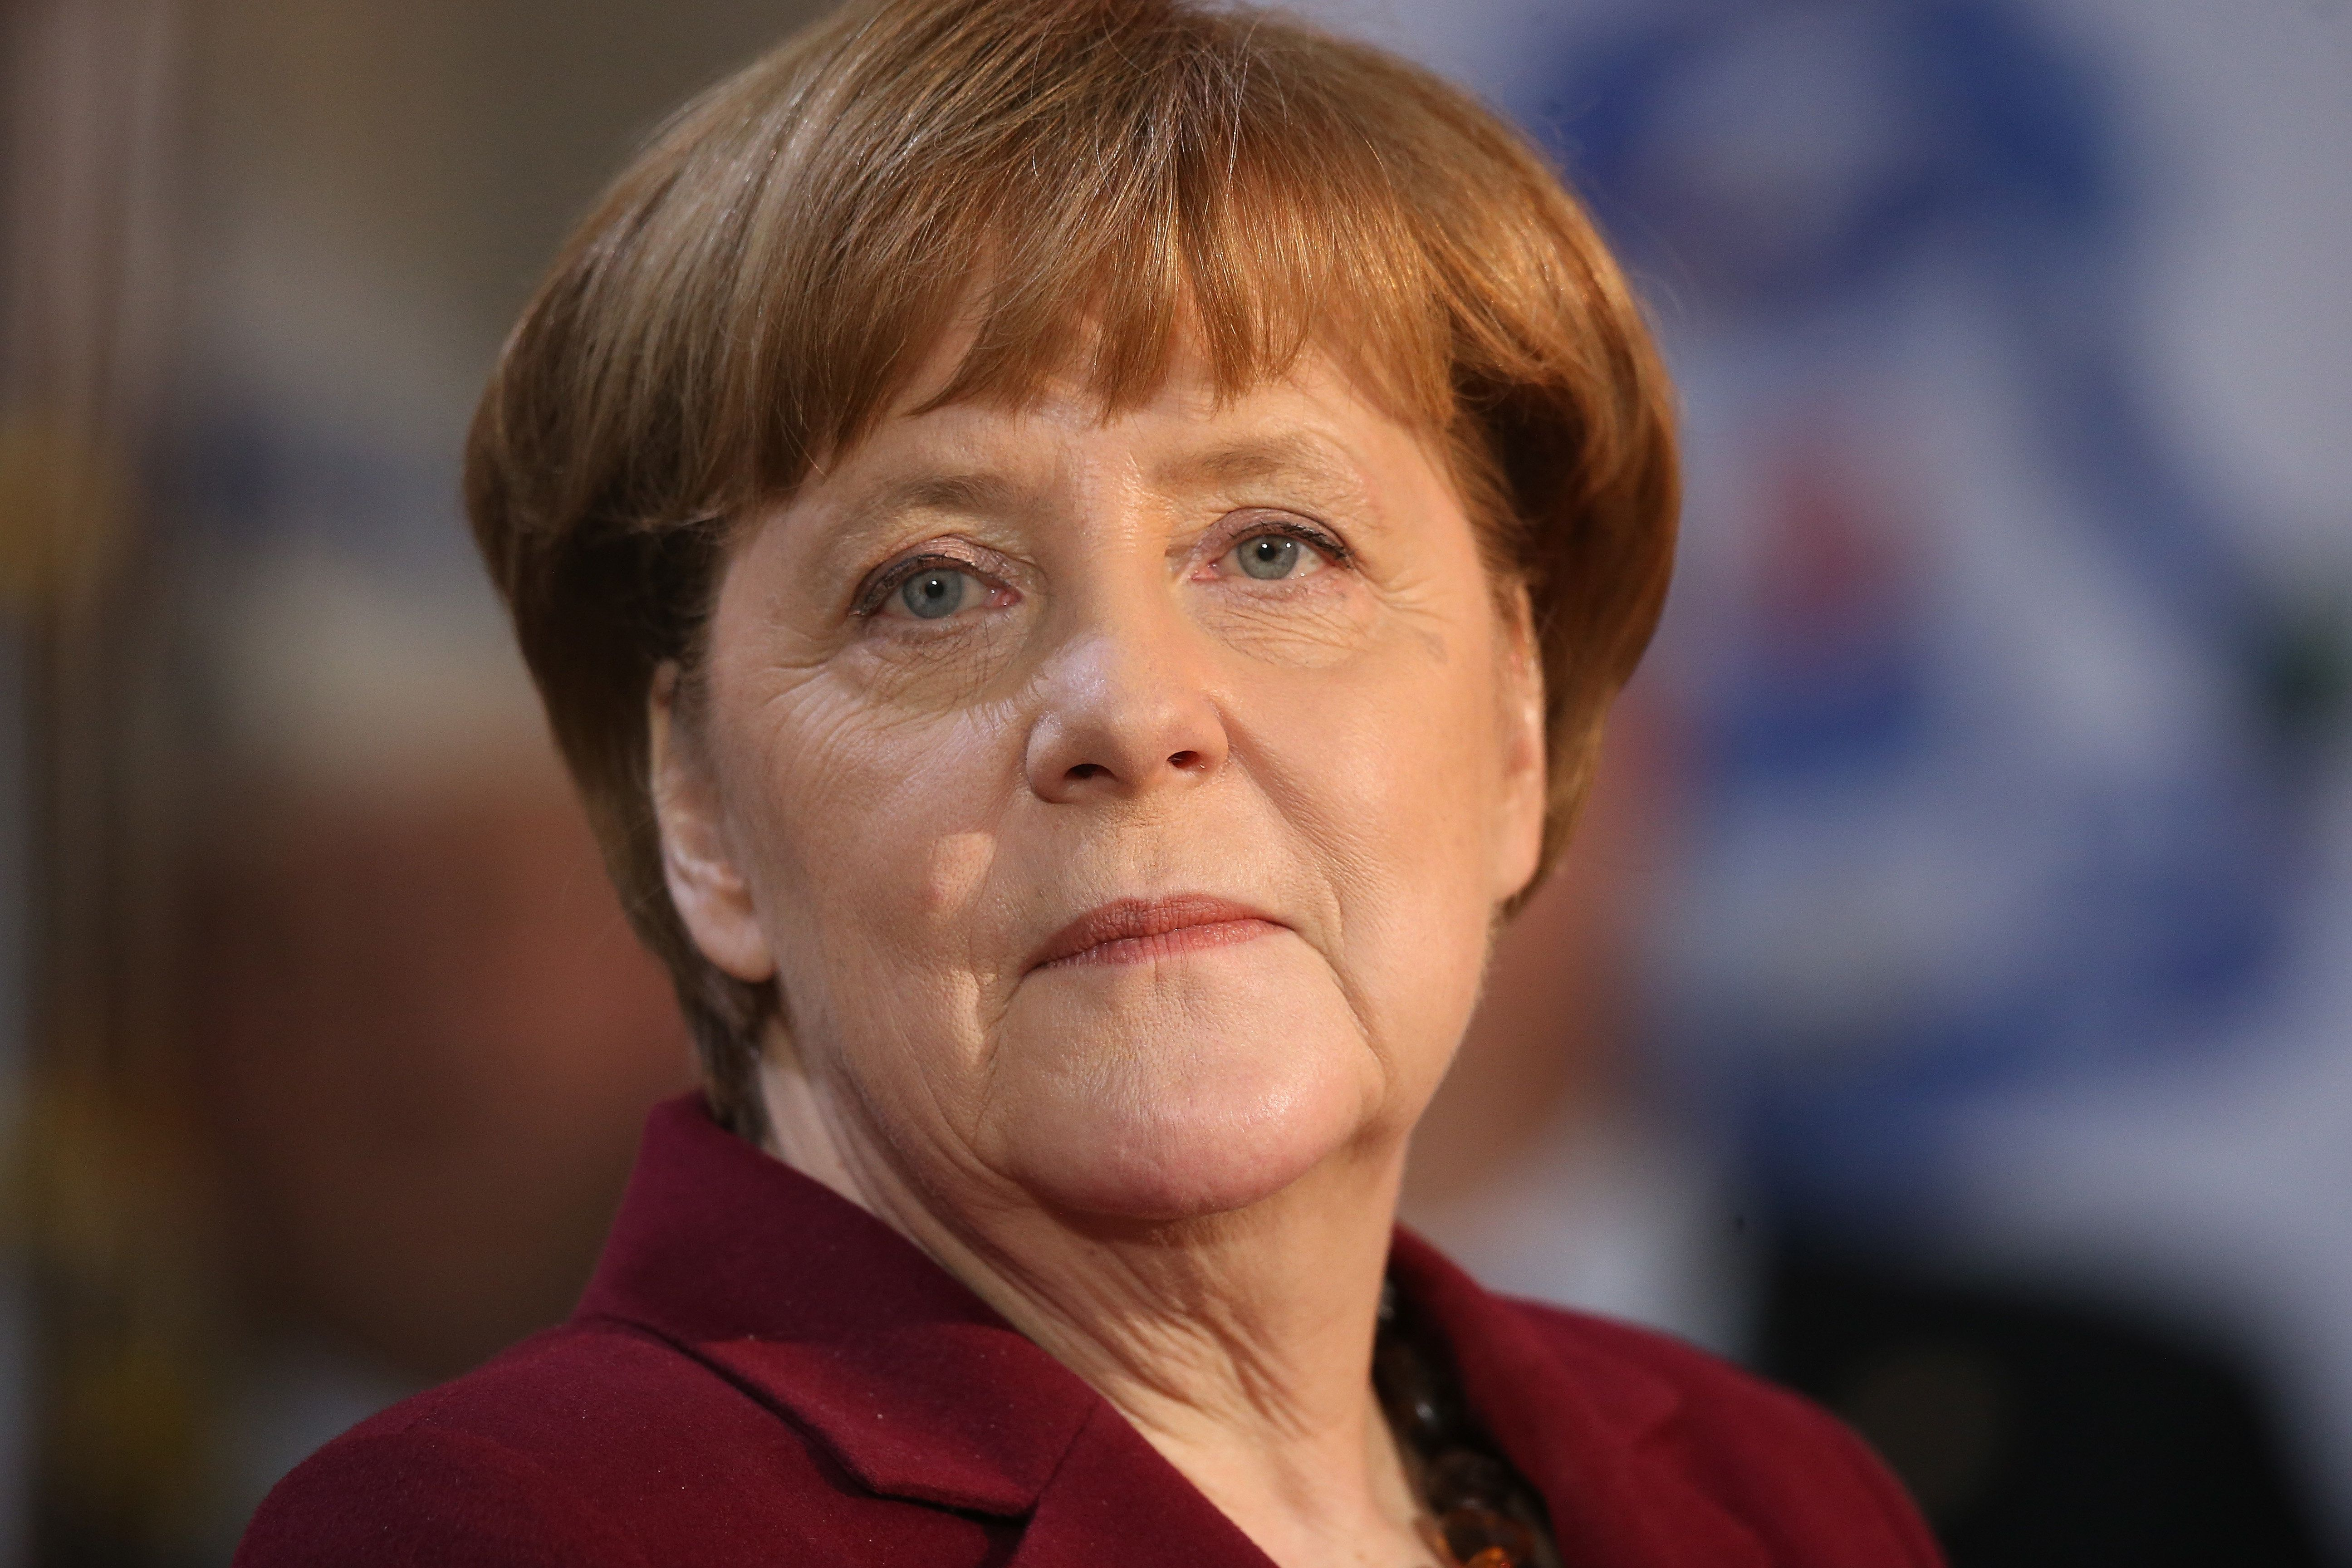 In a speech Monday, German Chancellor Angela Merkel said the rise of populism wouldn't get the world